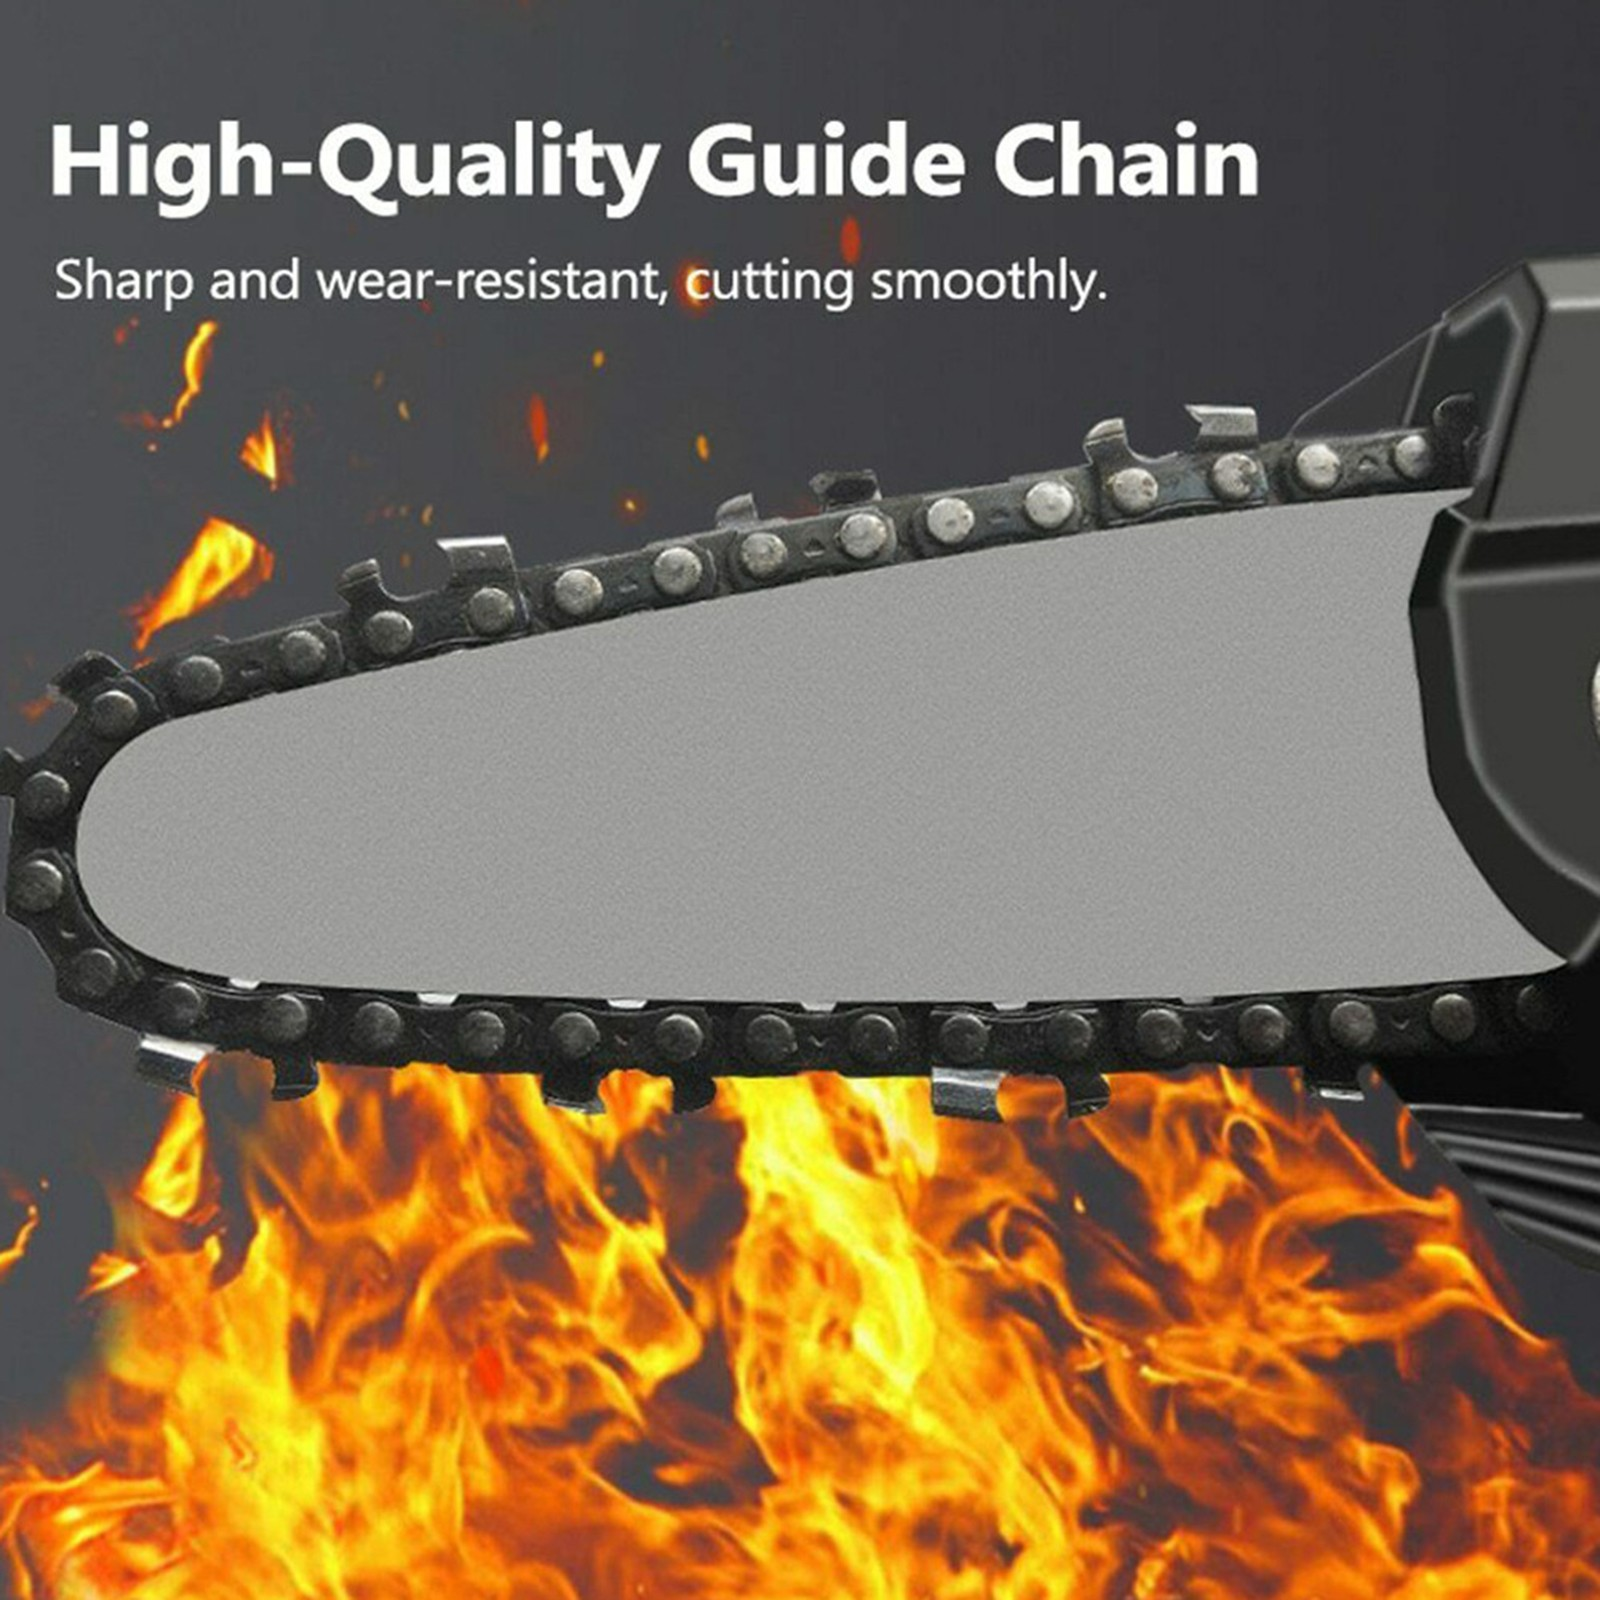 Mini  Chain Saw Chain for 4-Inch saw Cordless Electric Handheld Rechargeable Battery Chainsaw,Chainsaw Chain